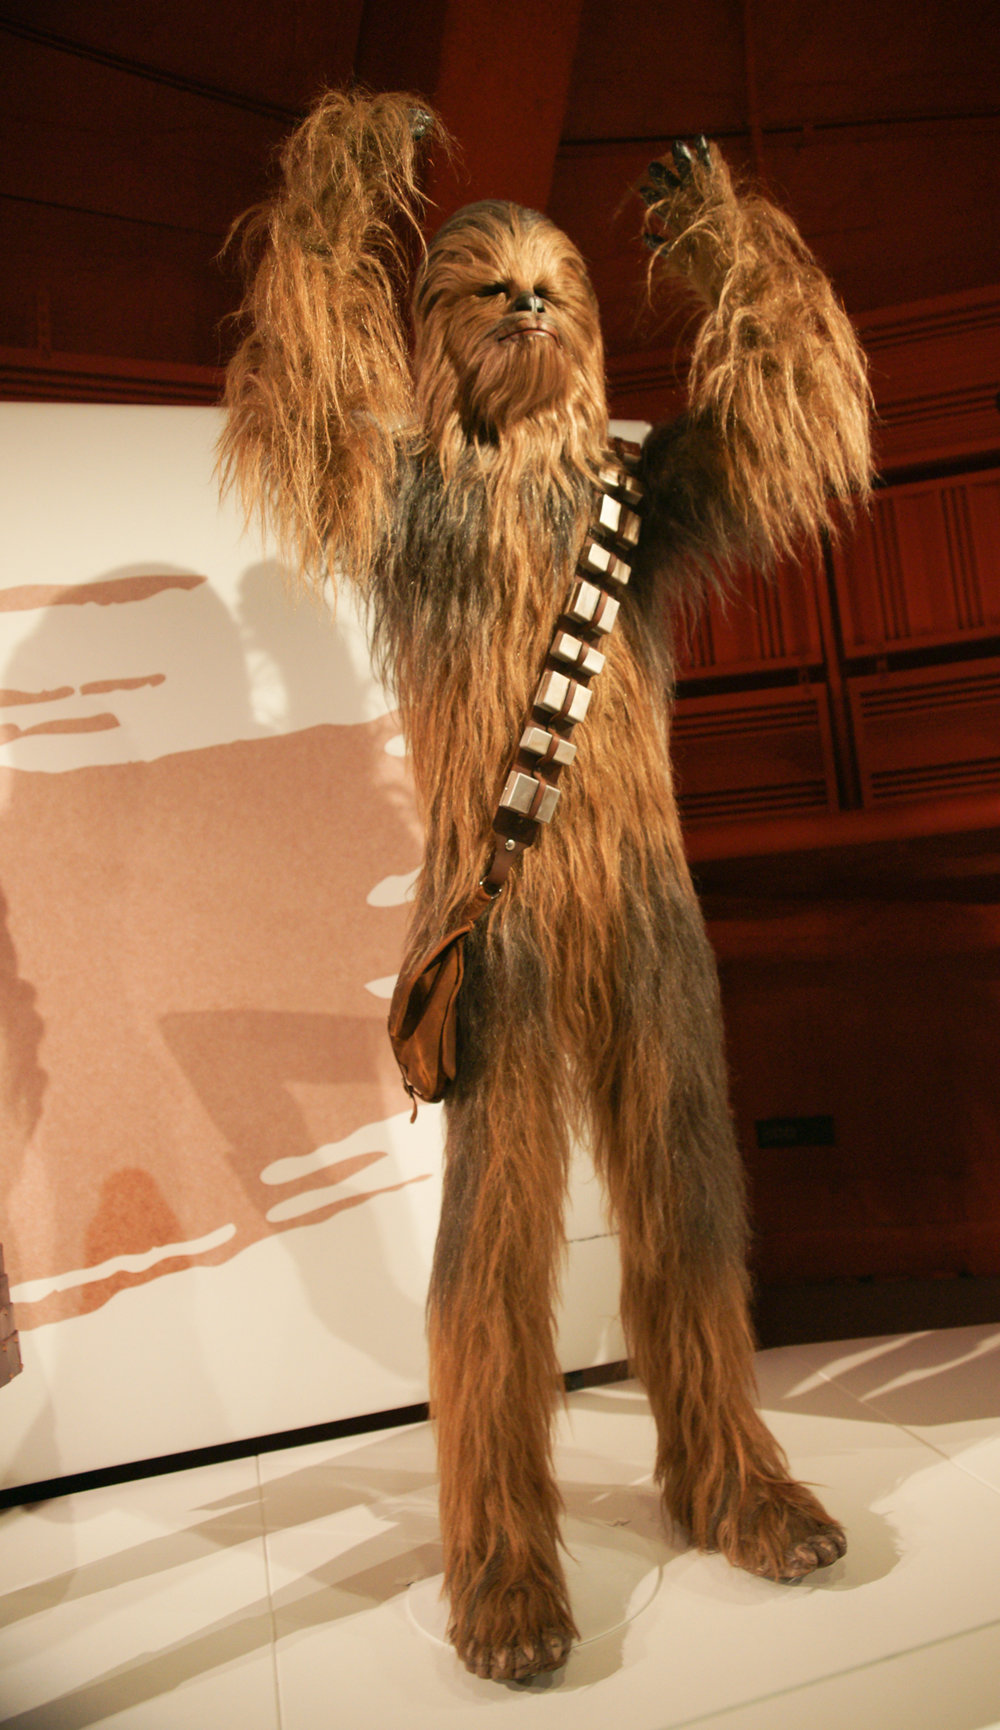 Chewbacca at Star Wars Exhibit